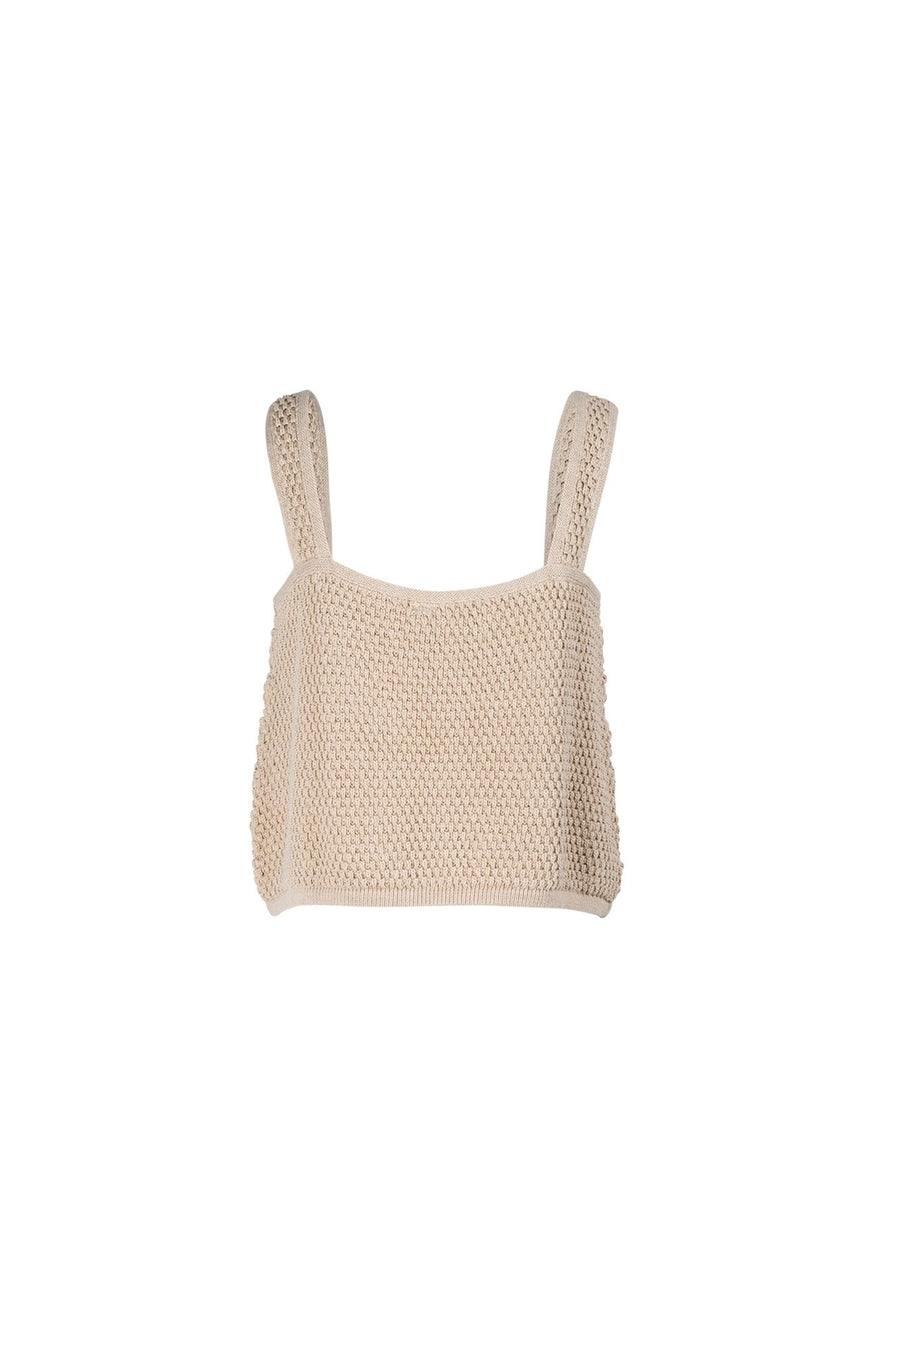 INDIAN SUMMER CO - GOLDEN HOUR KNIT TANK // ALMOND